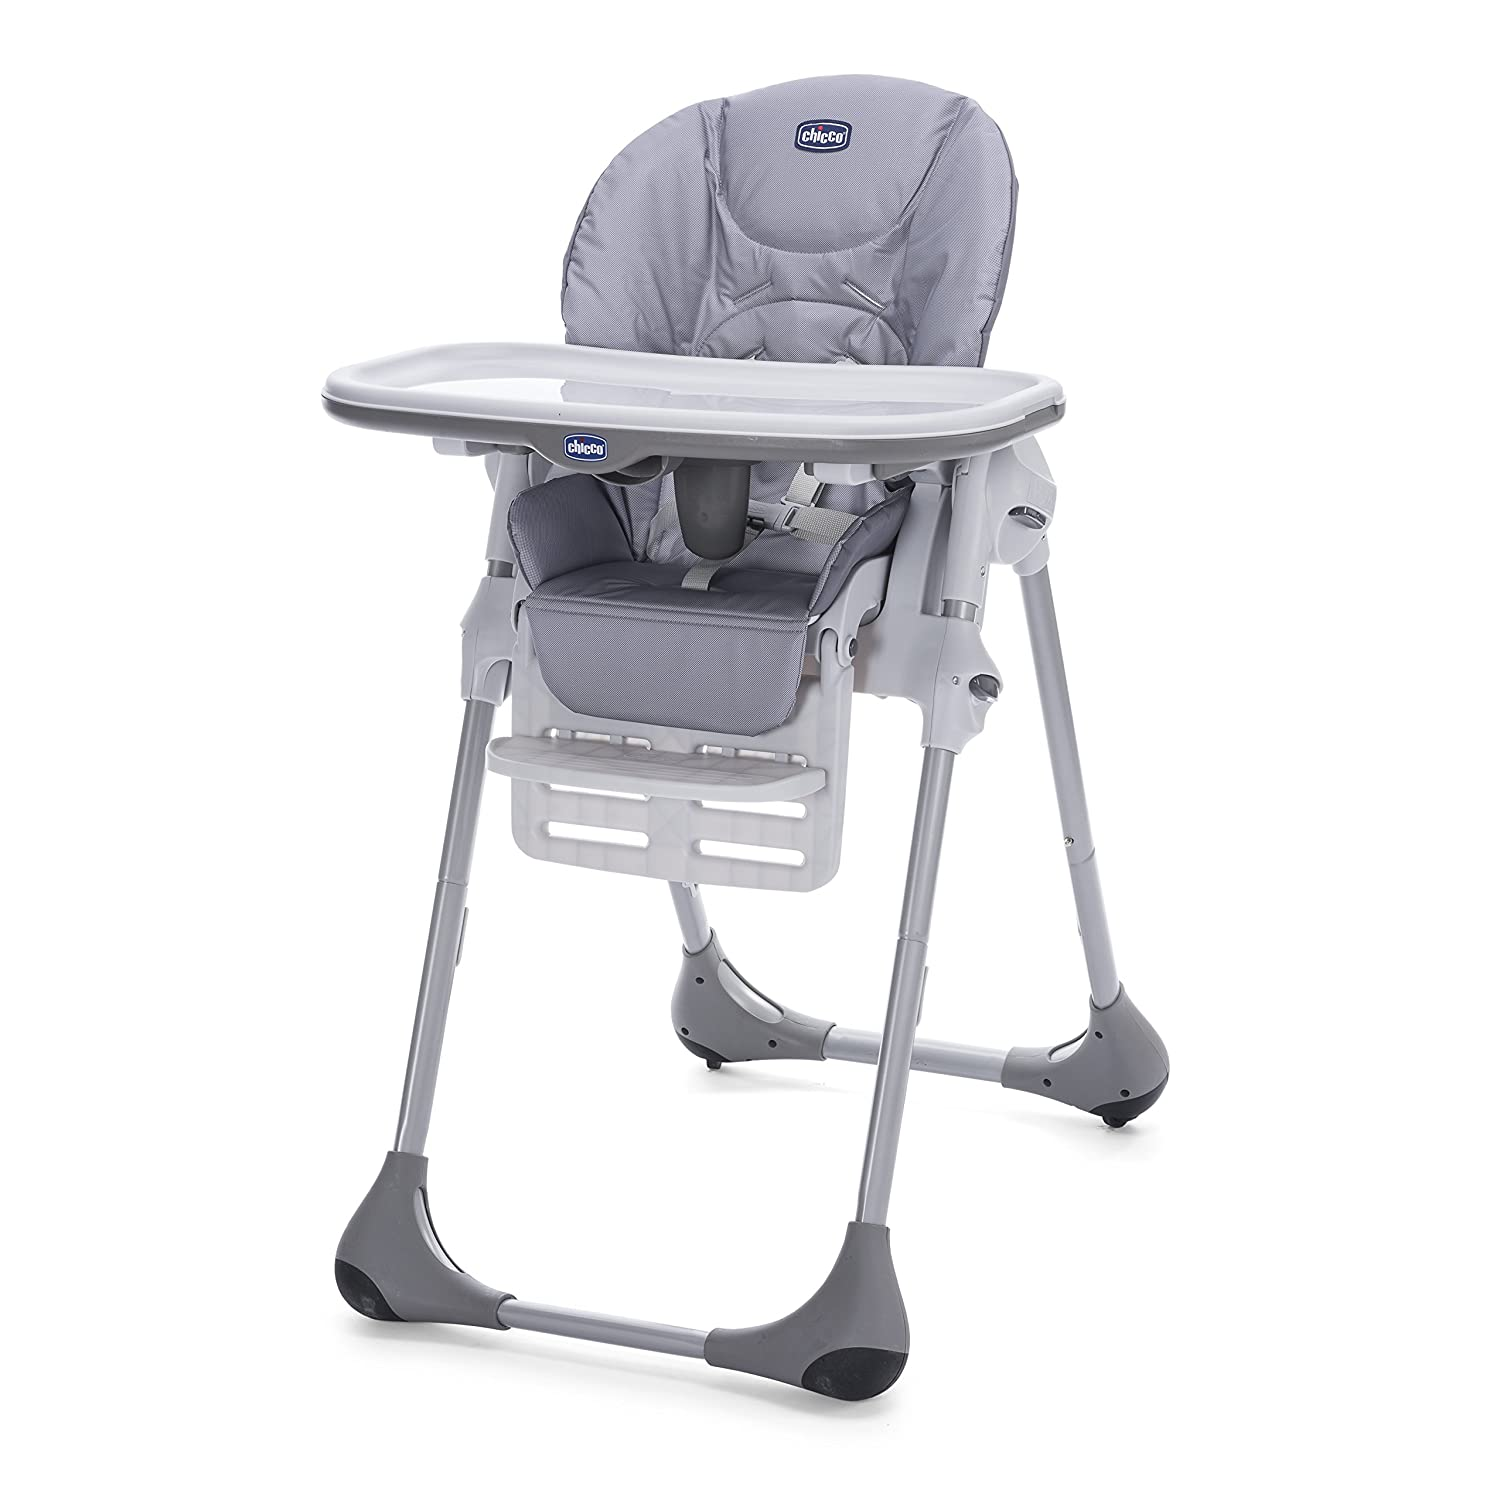 Amazon Best Sellers The most popular items in Highchairs